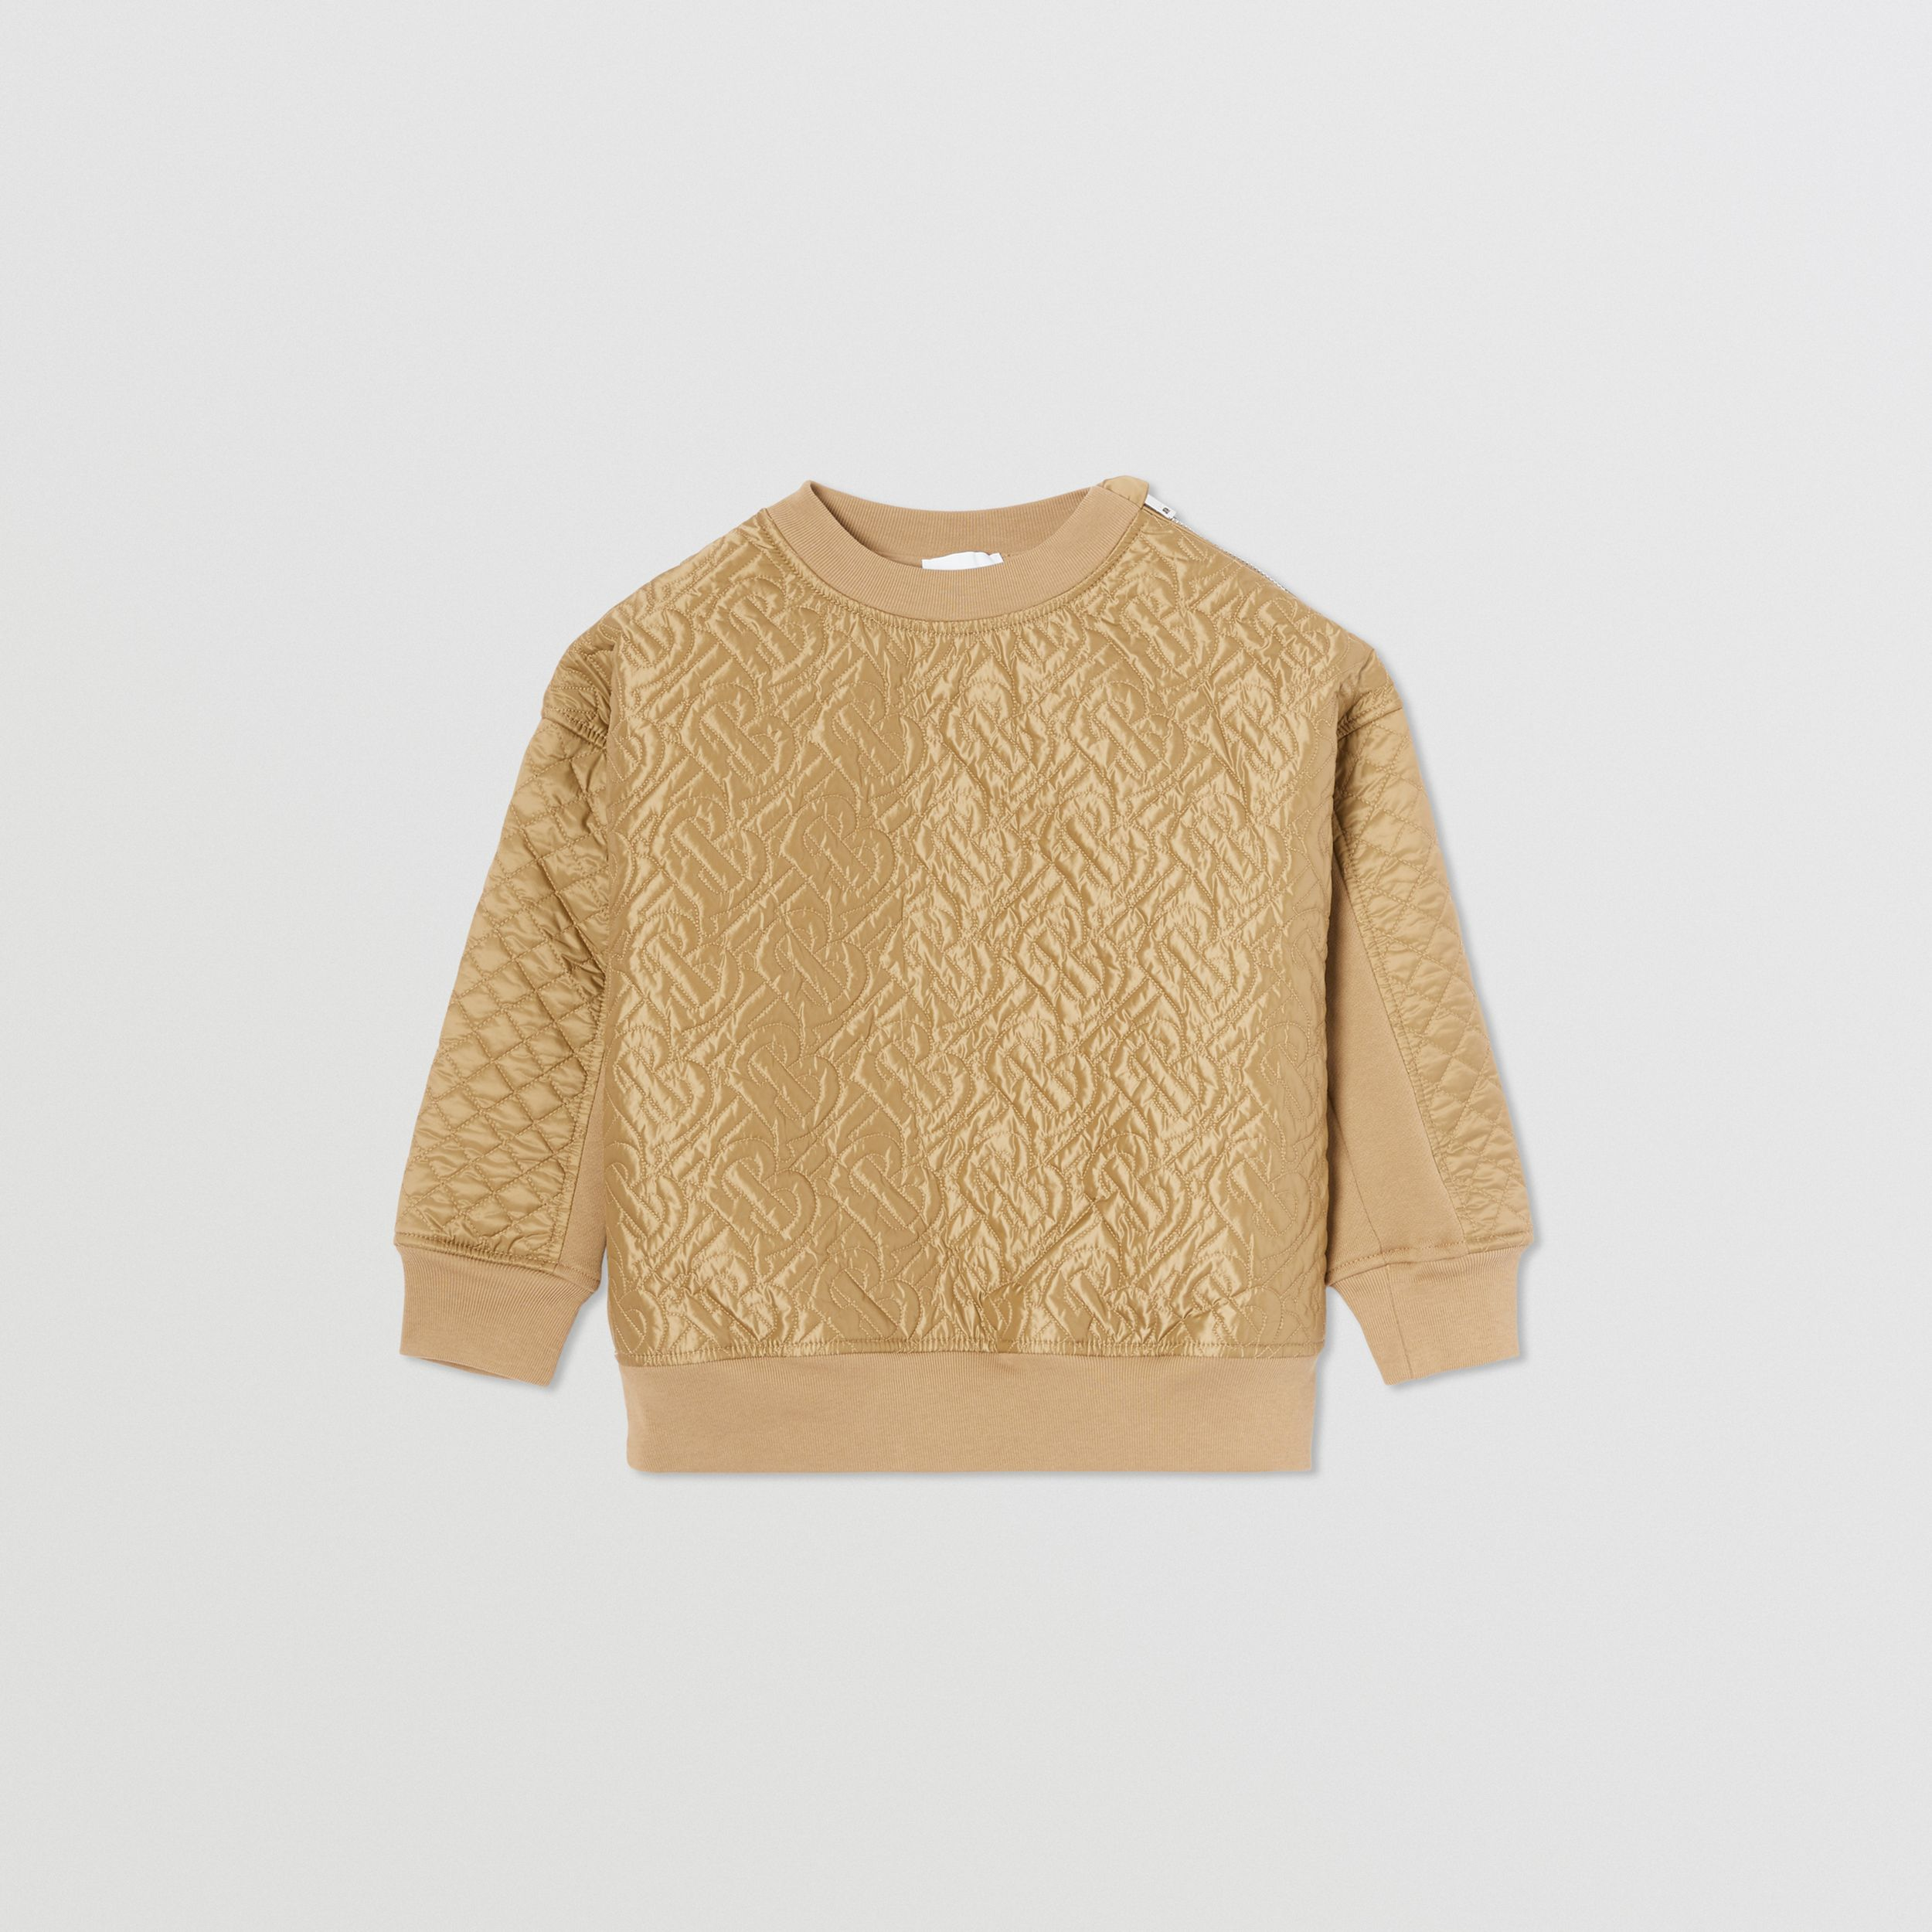 Monogram Quilted Panel Cotton Sweatshirt in Honey | Burberry United States - 1